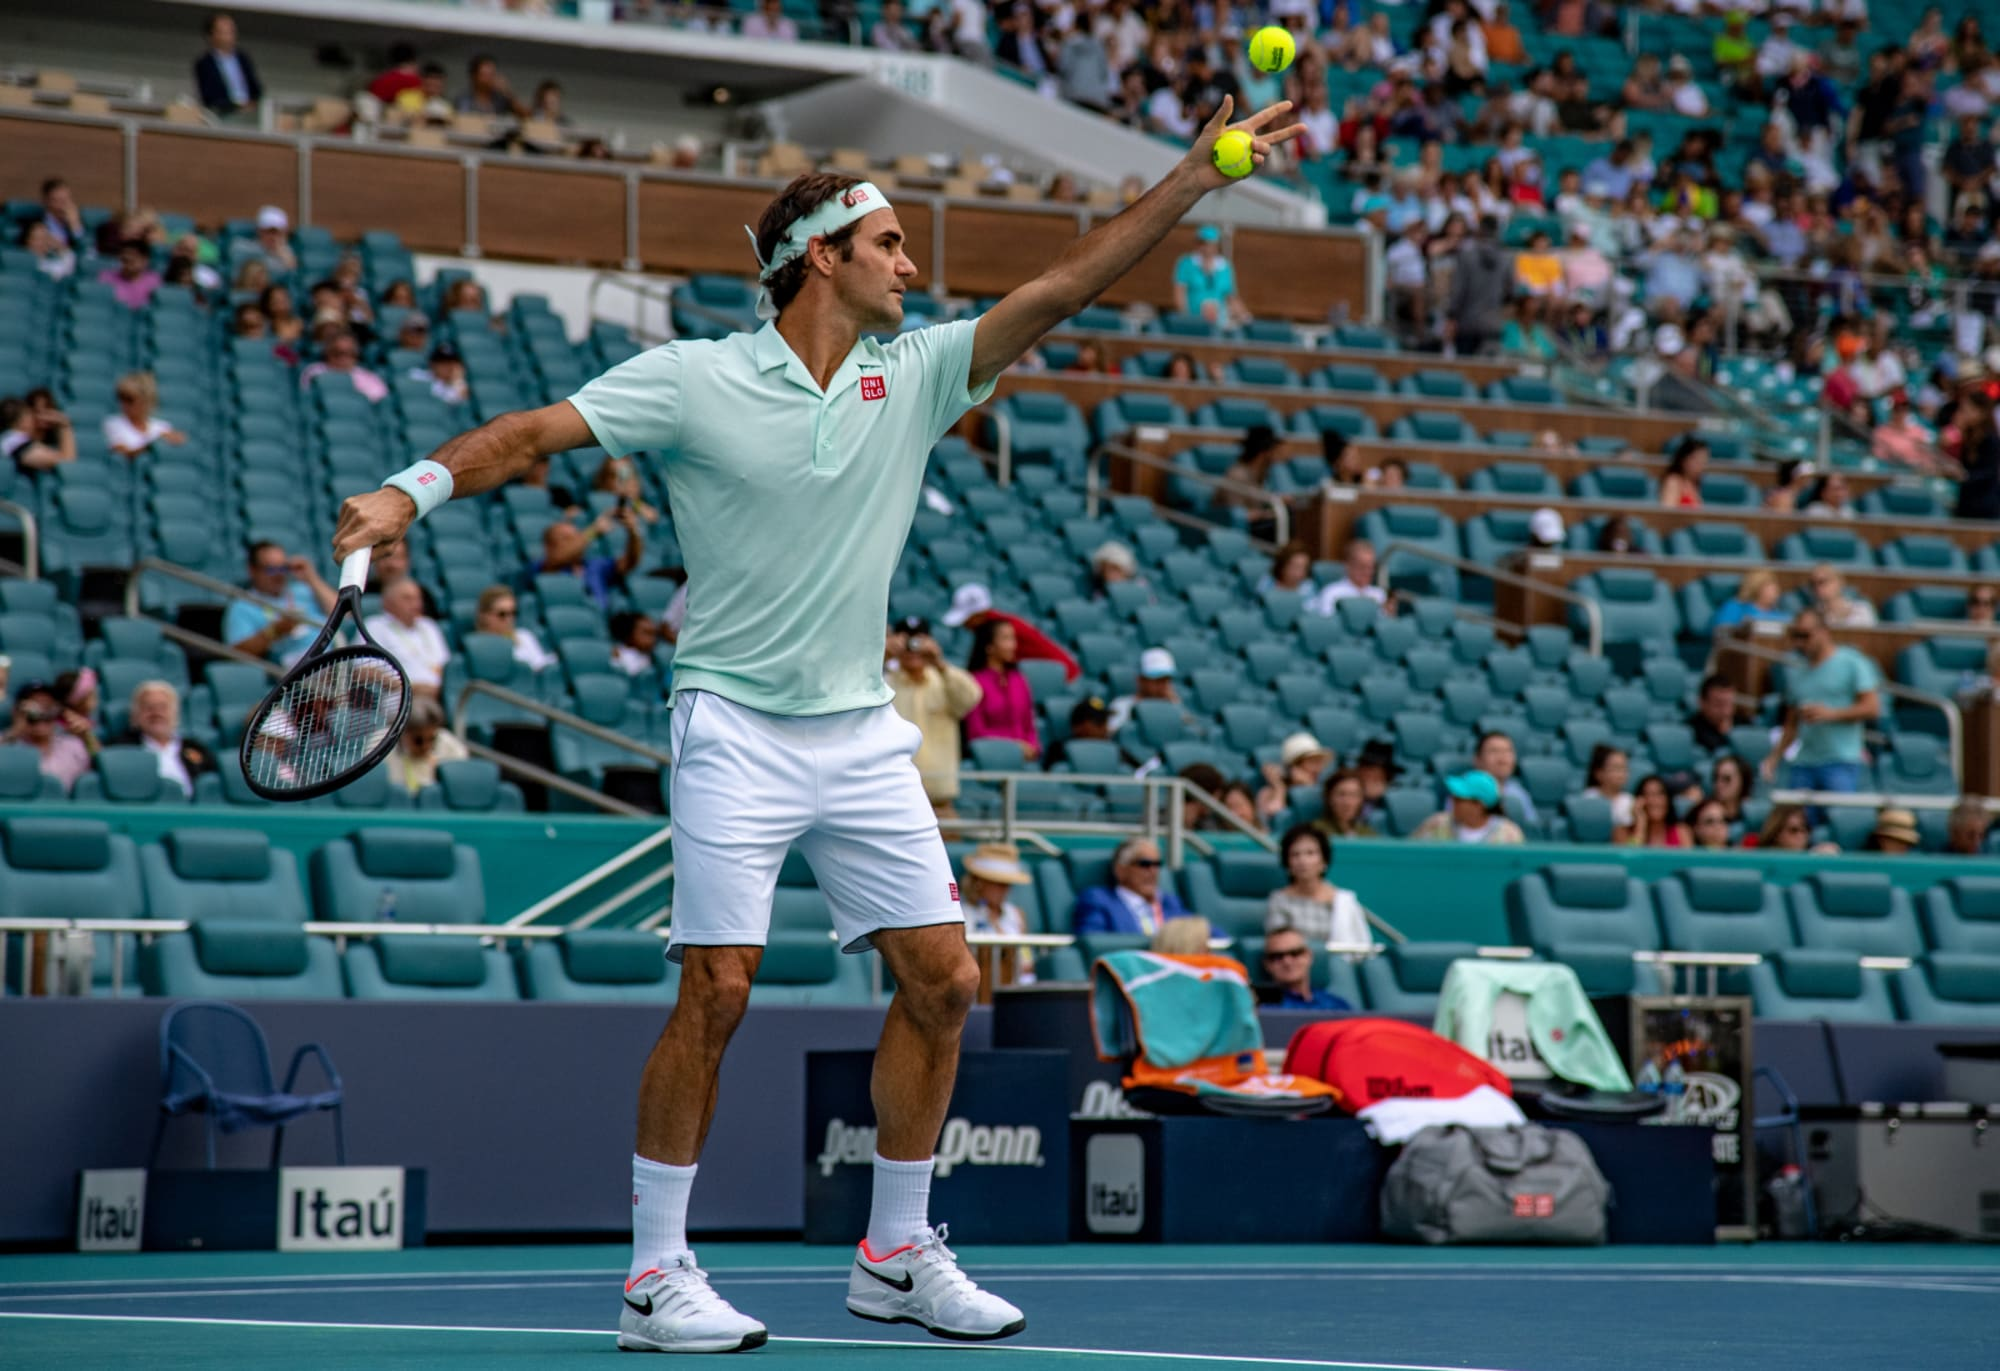 Tennis takeover: Why top stars are the highest-paid athletes in the world